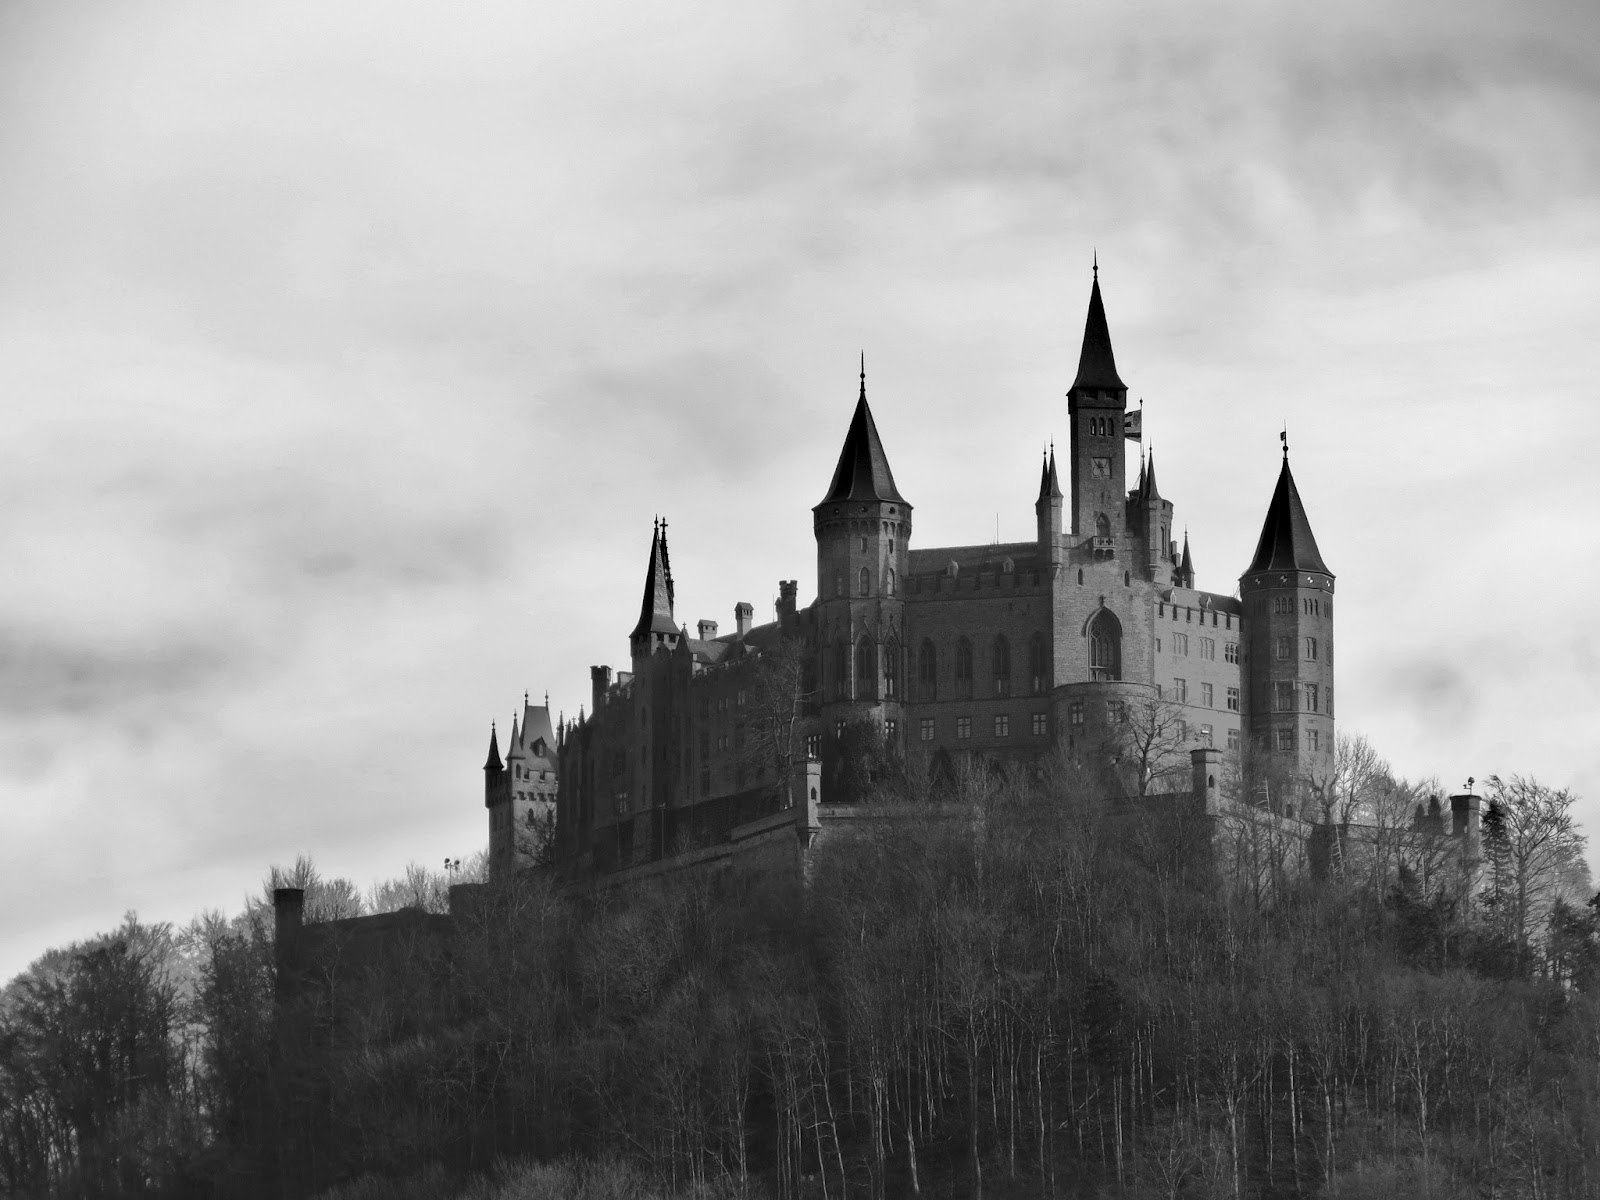 hohenzollern castle by dirtypaws13 - photo #4